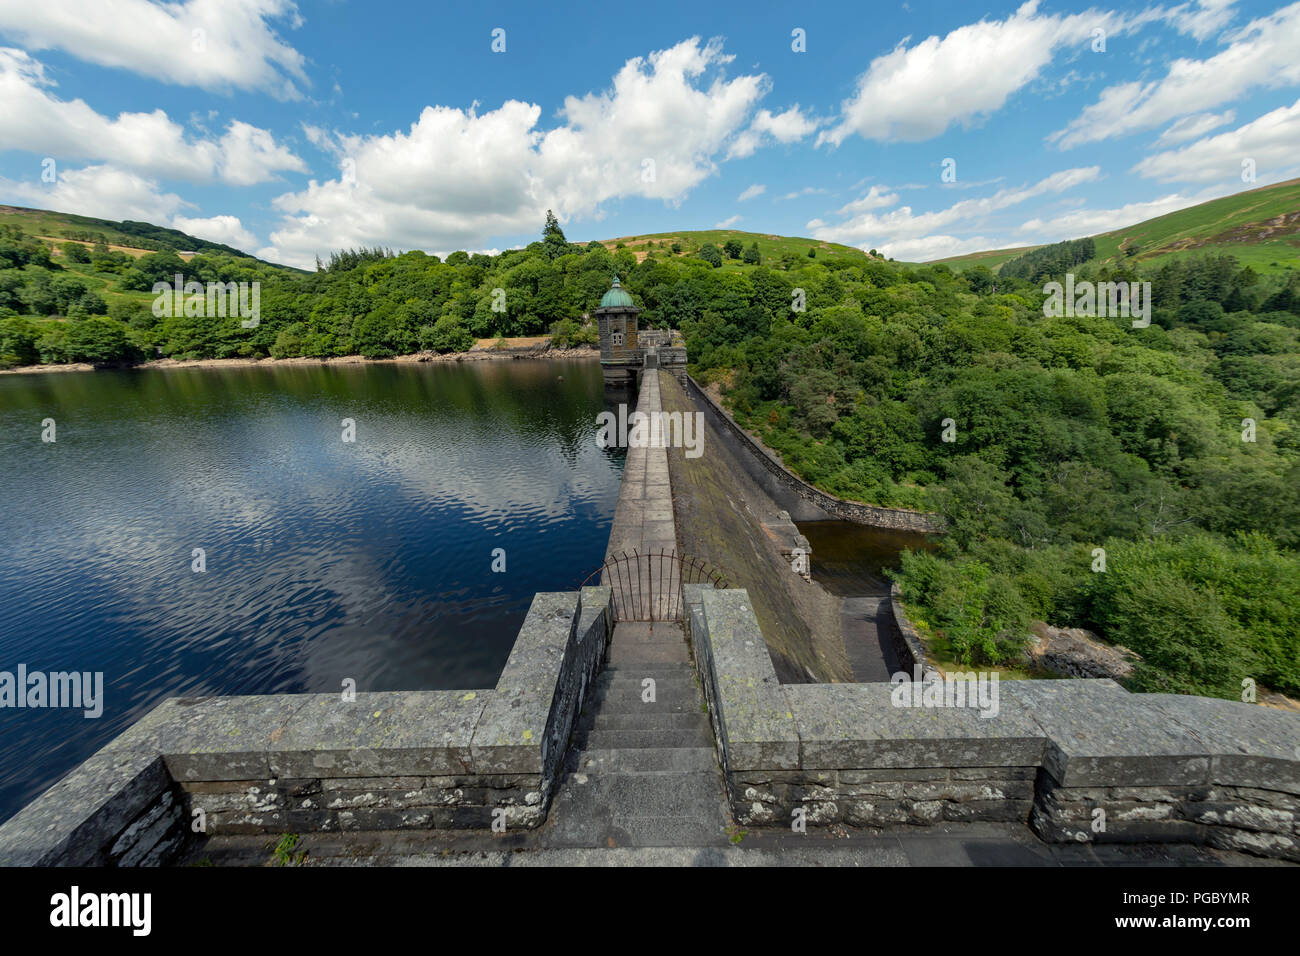 Pen Y Garreg Dam in the Elan Valley area of Wales a stunning piece of architecture - Stock Image